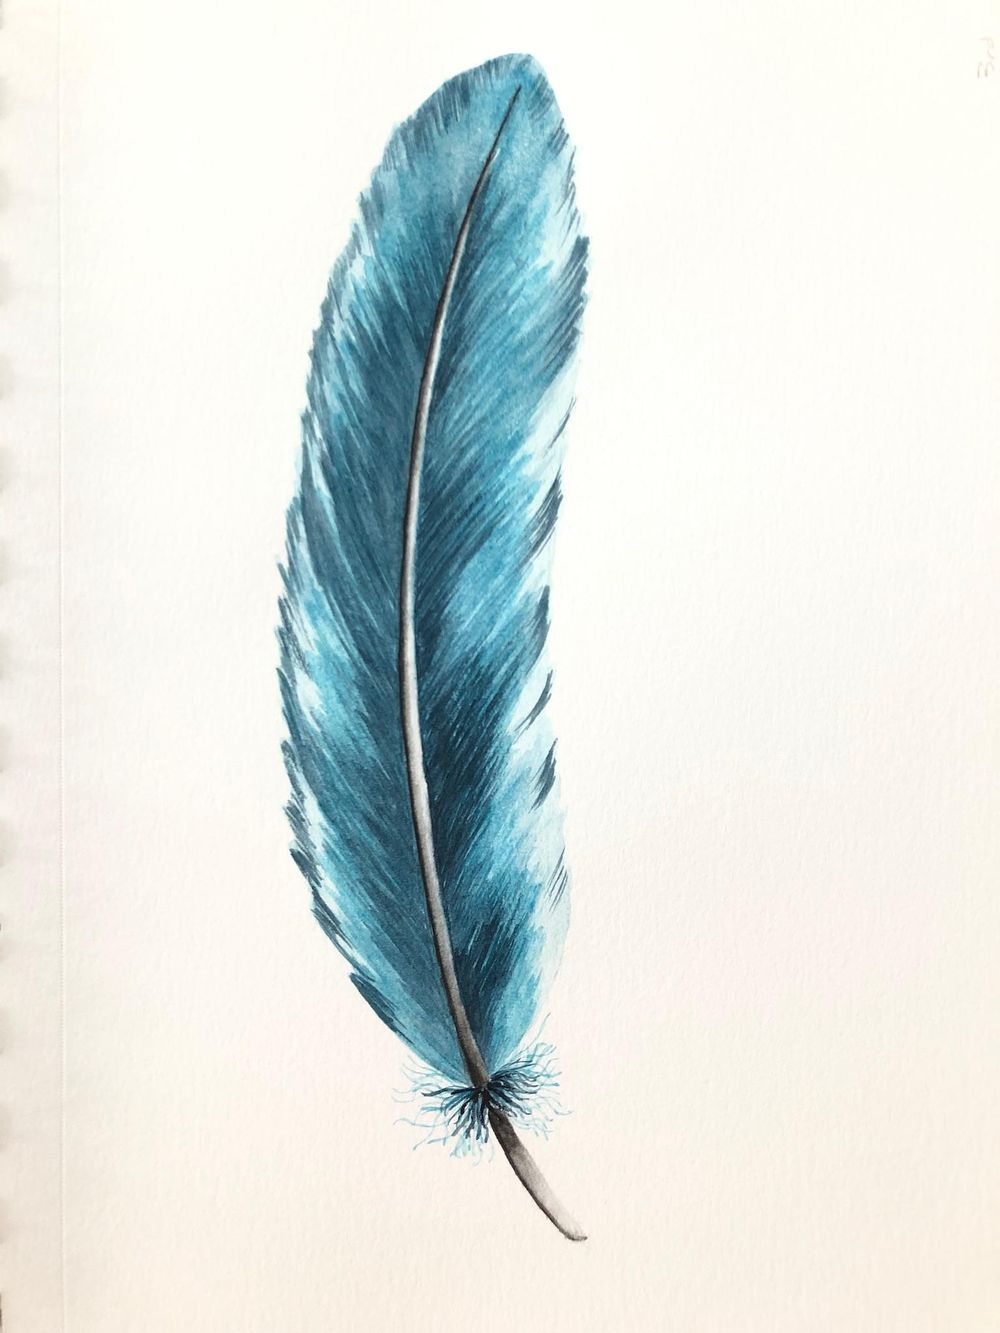 Painting Feathers - image 2 - student project